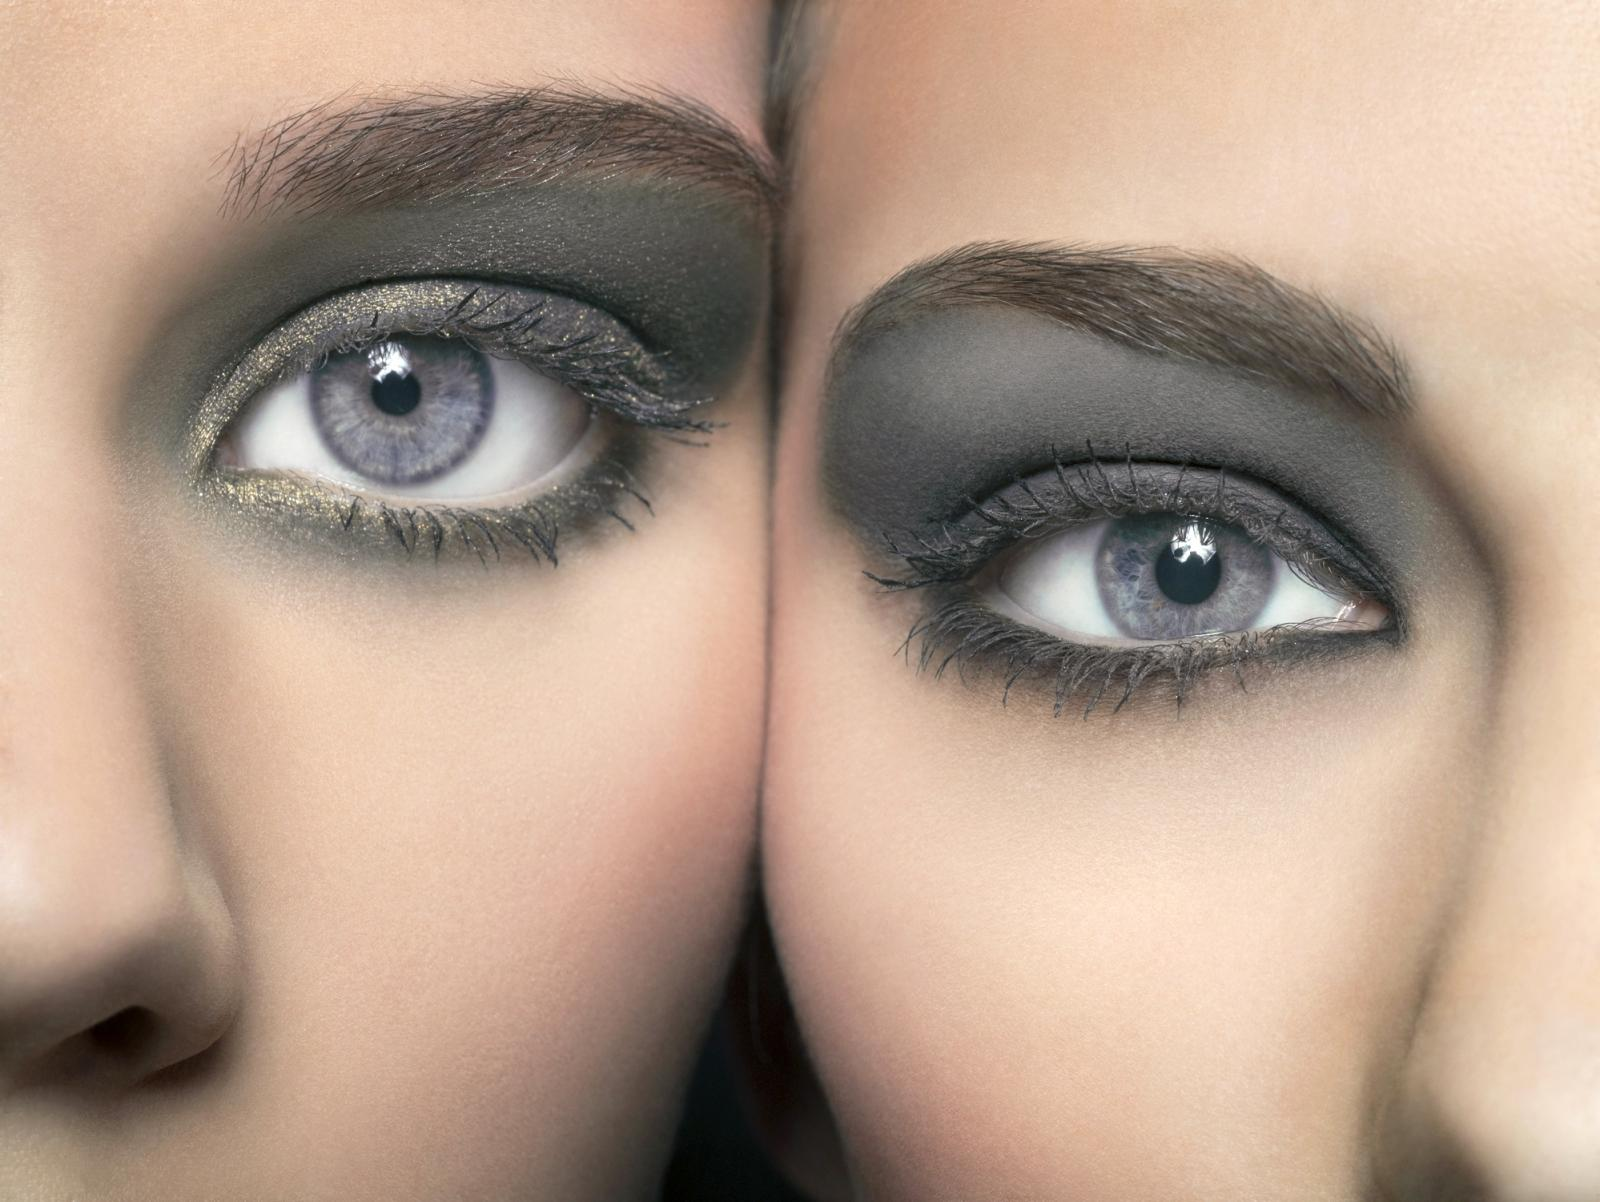 Close-up of young women's eyes with grey eye shadow